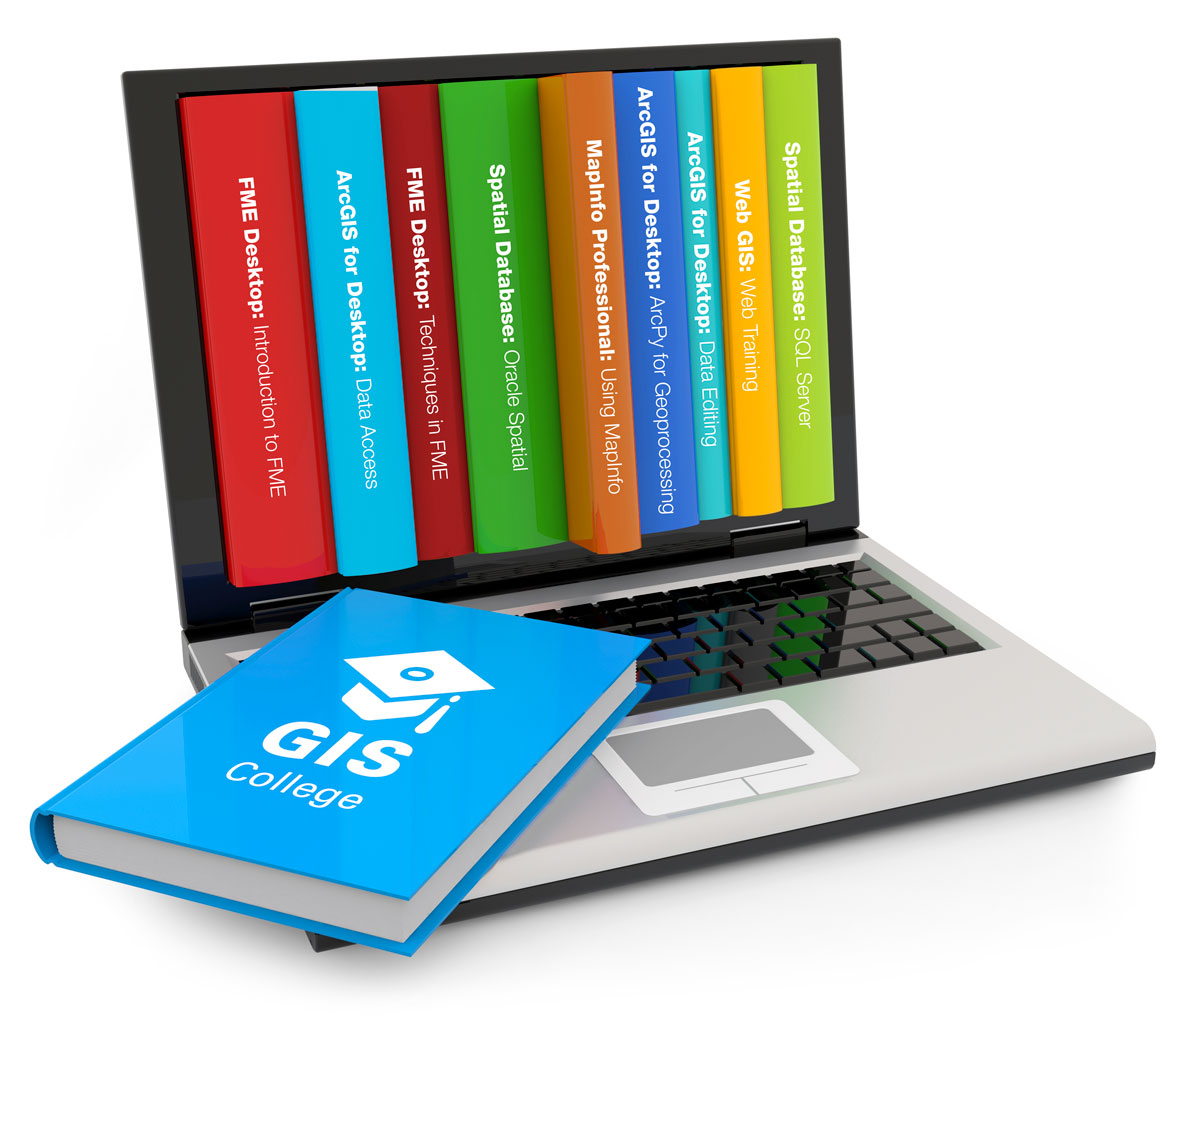 Tailored gis training gis courses gis college ipad 1betcityfo Gallery